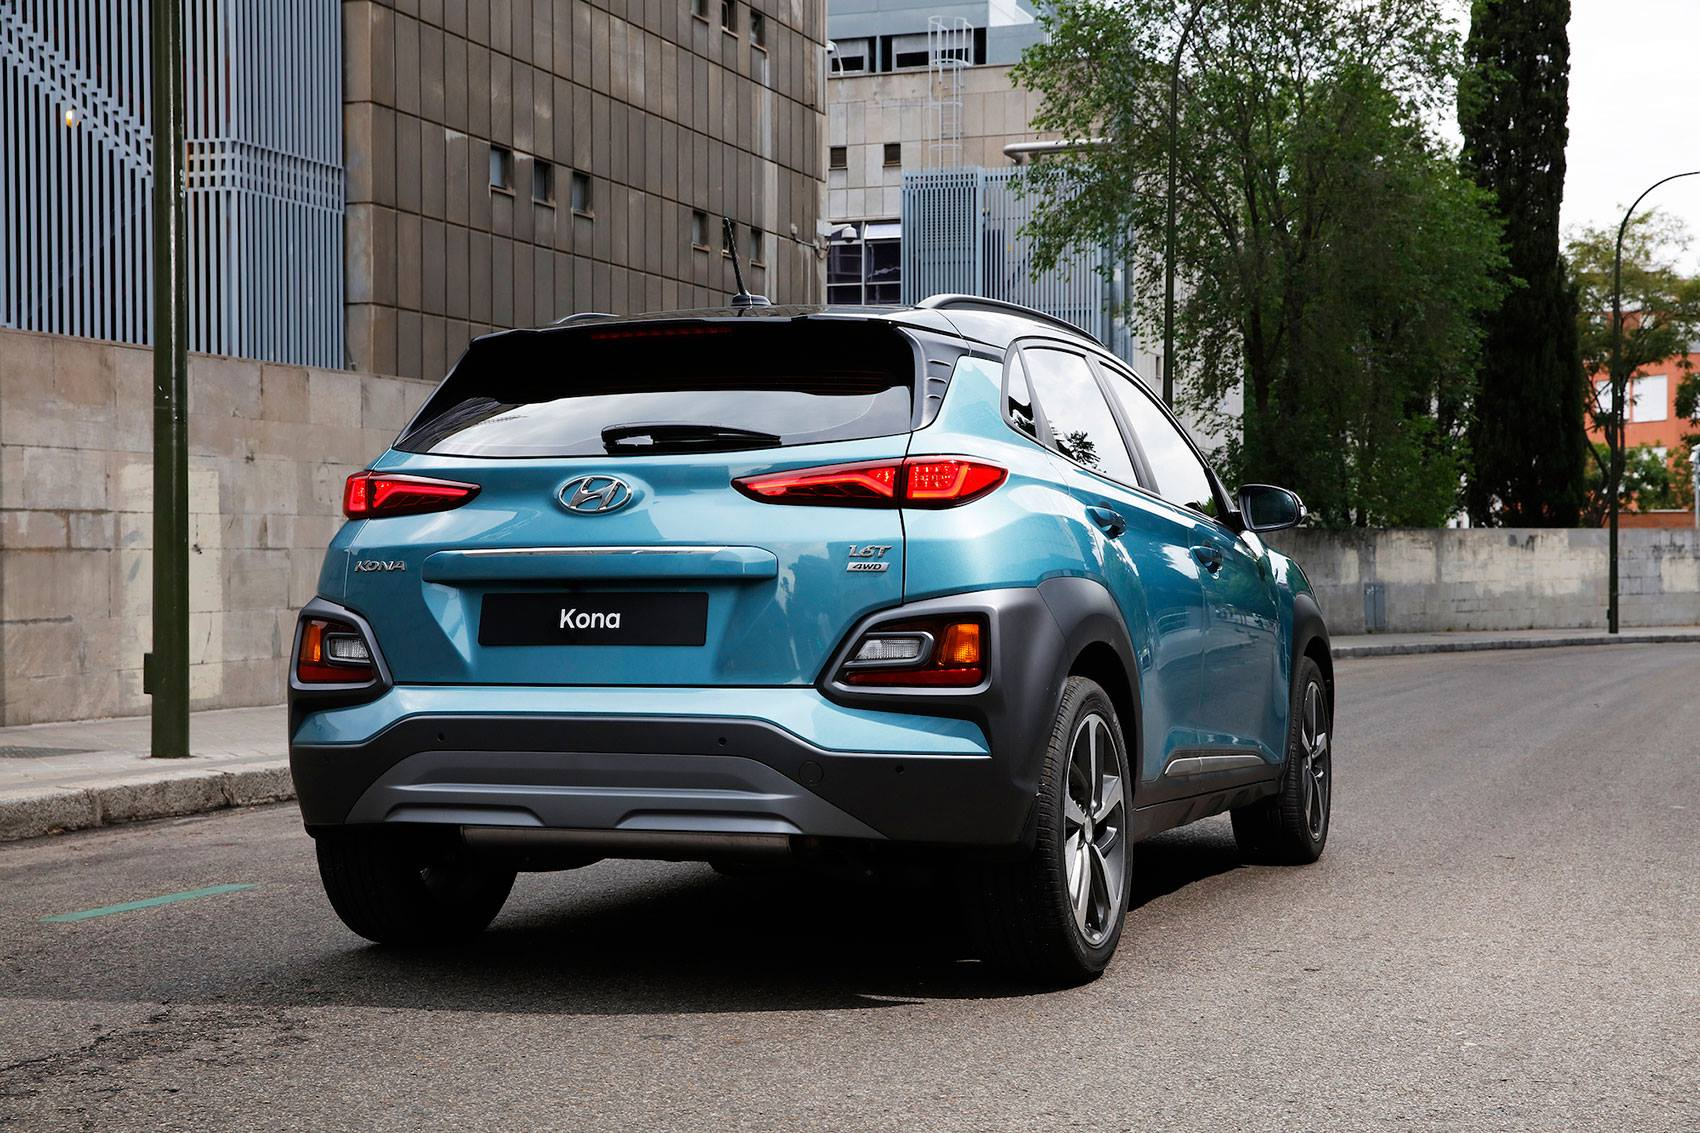 Hyundai Kona Arrives In The US At Los Angeles Auto Show - Los angeles car show 2018